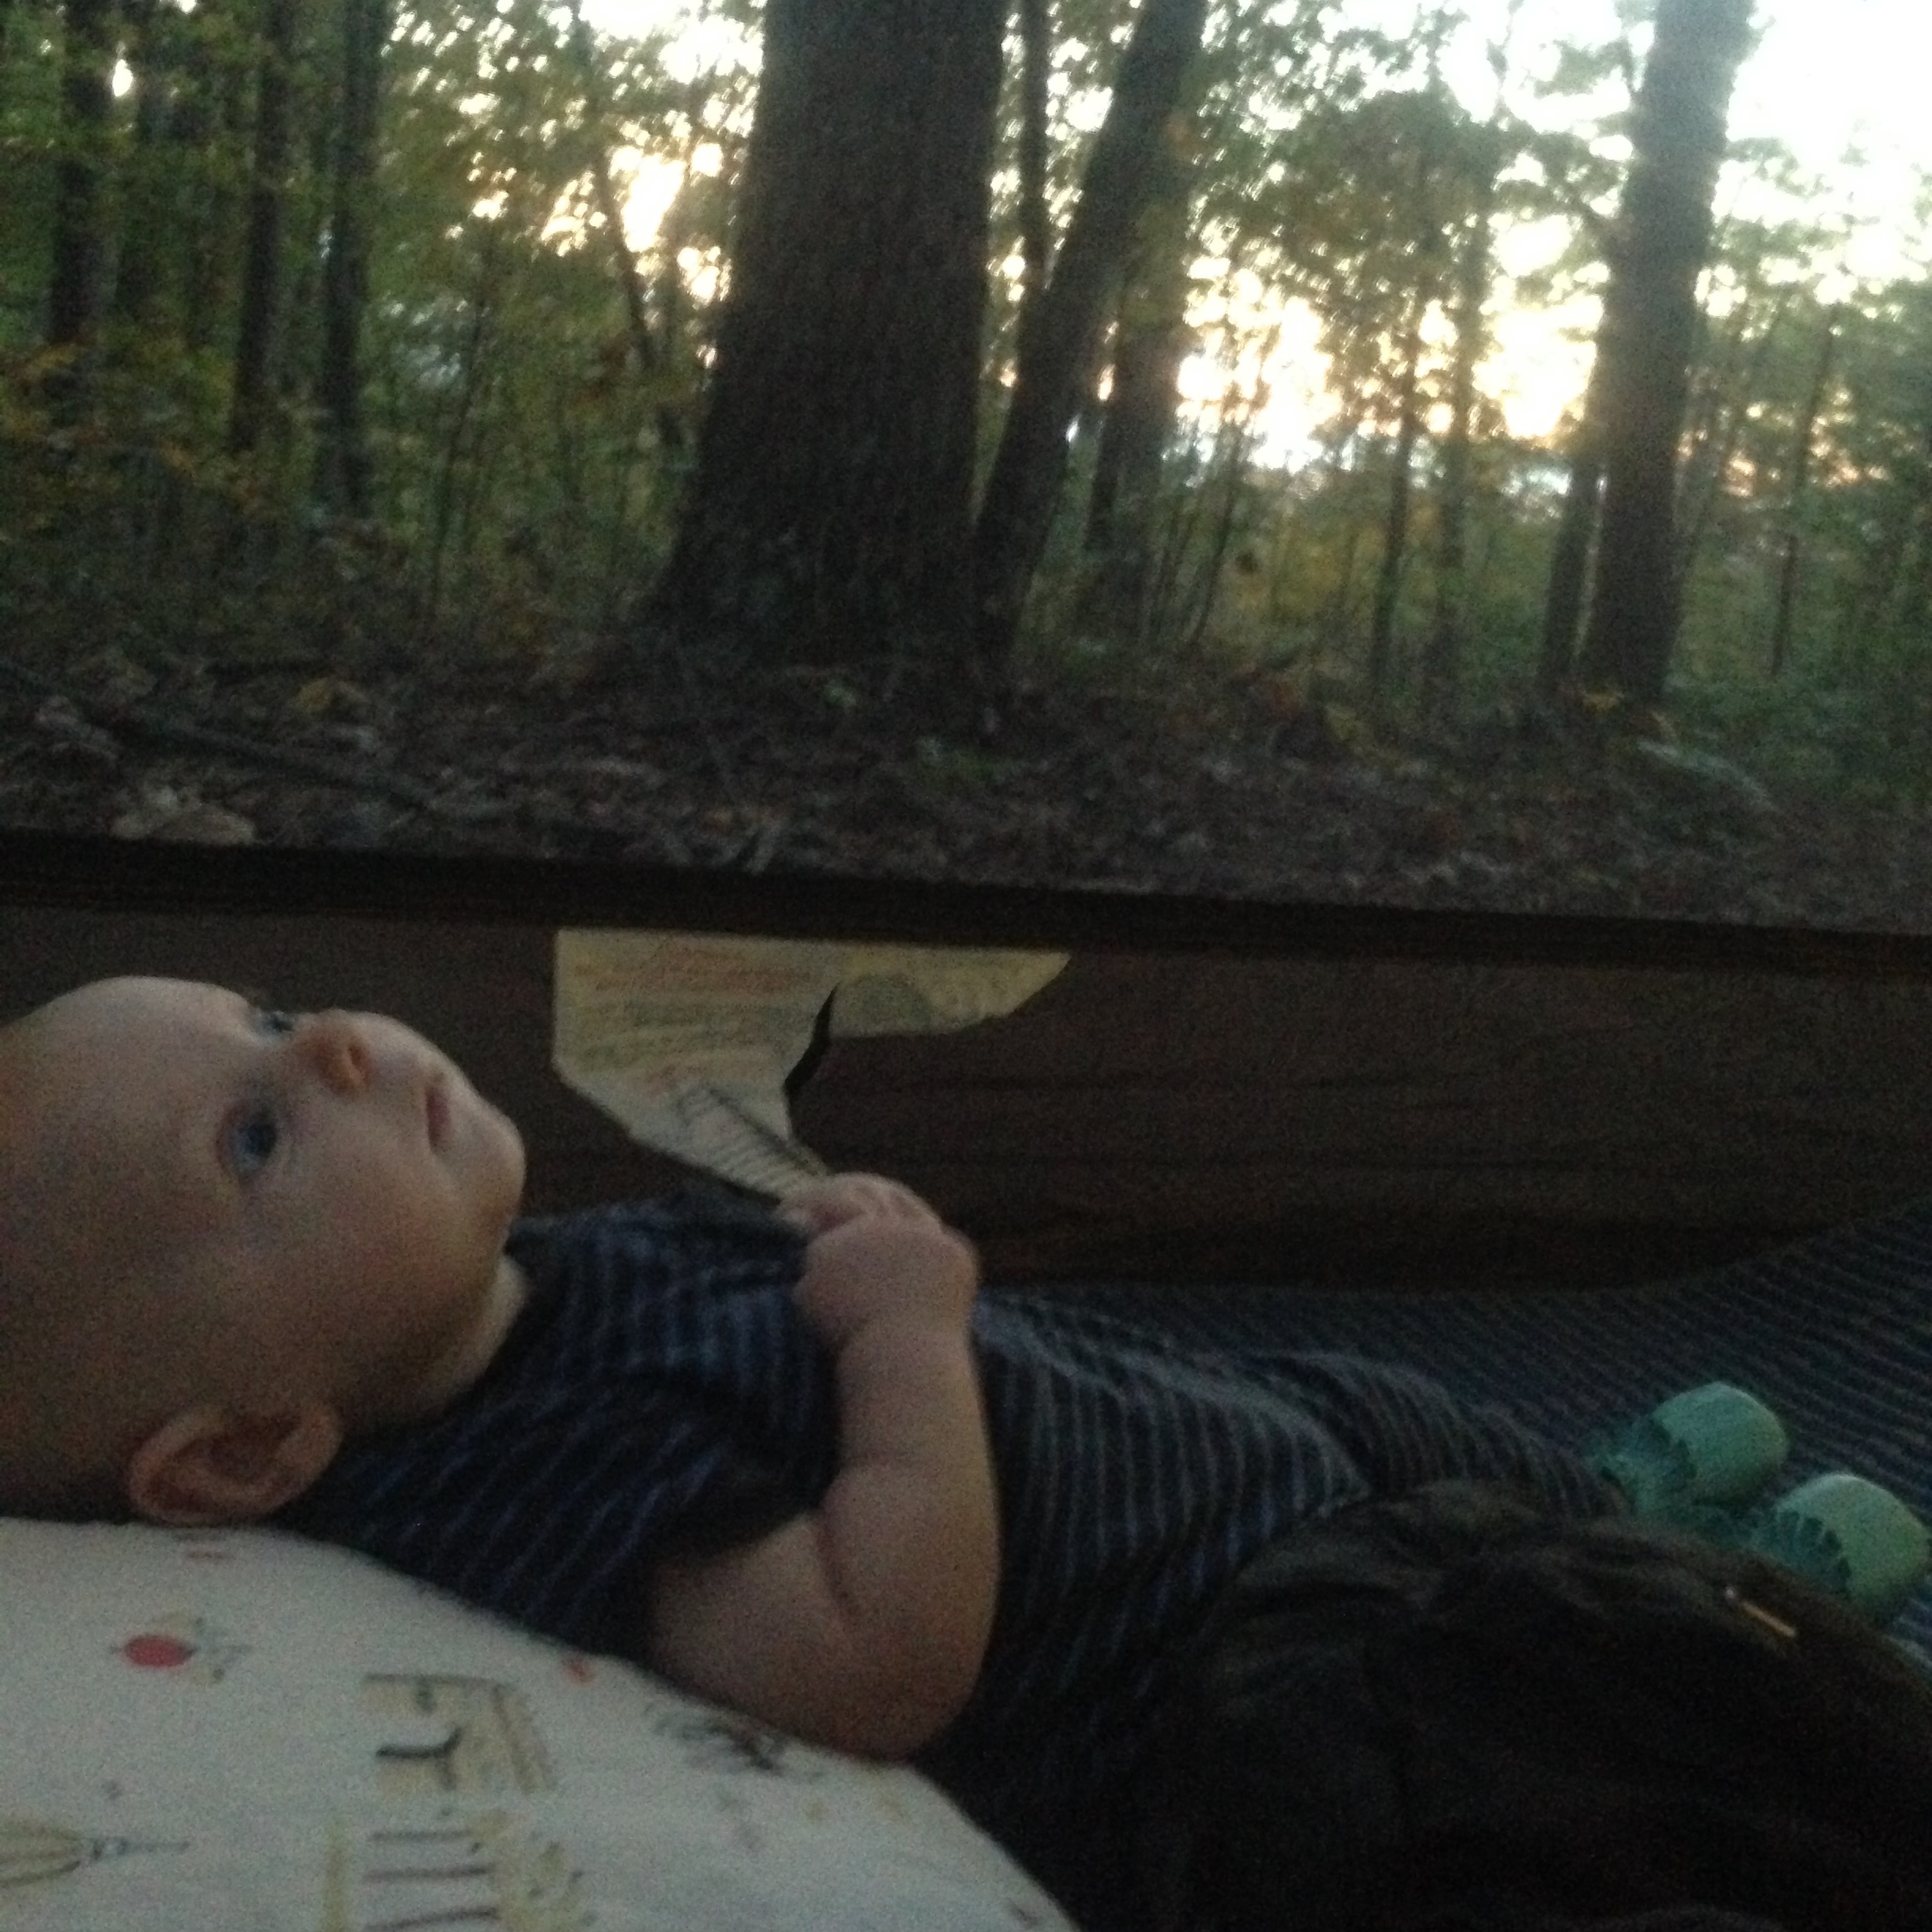 ^ The look of awe and wonder that is camping in the outdoors